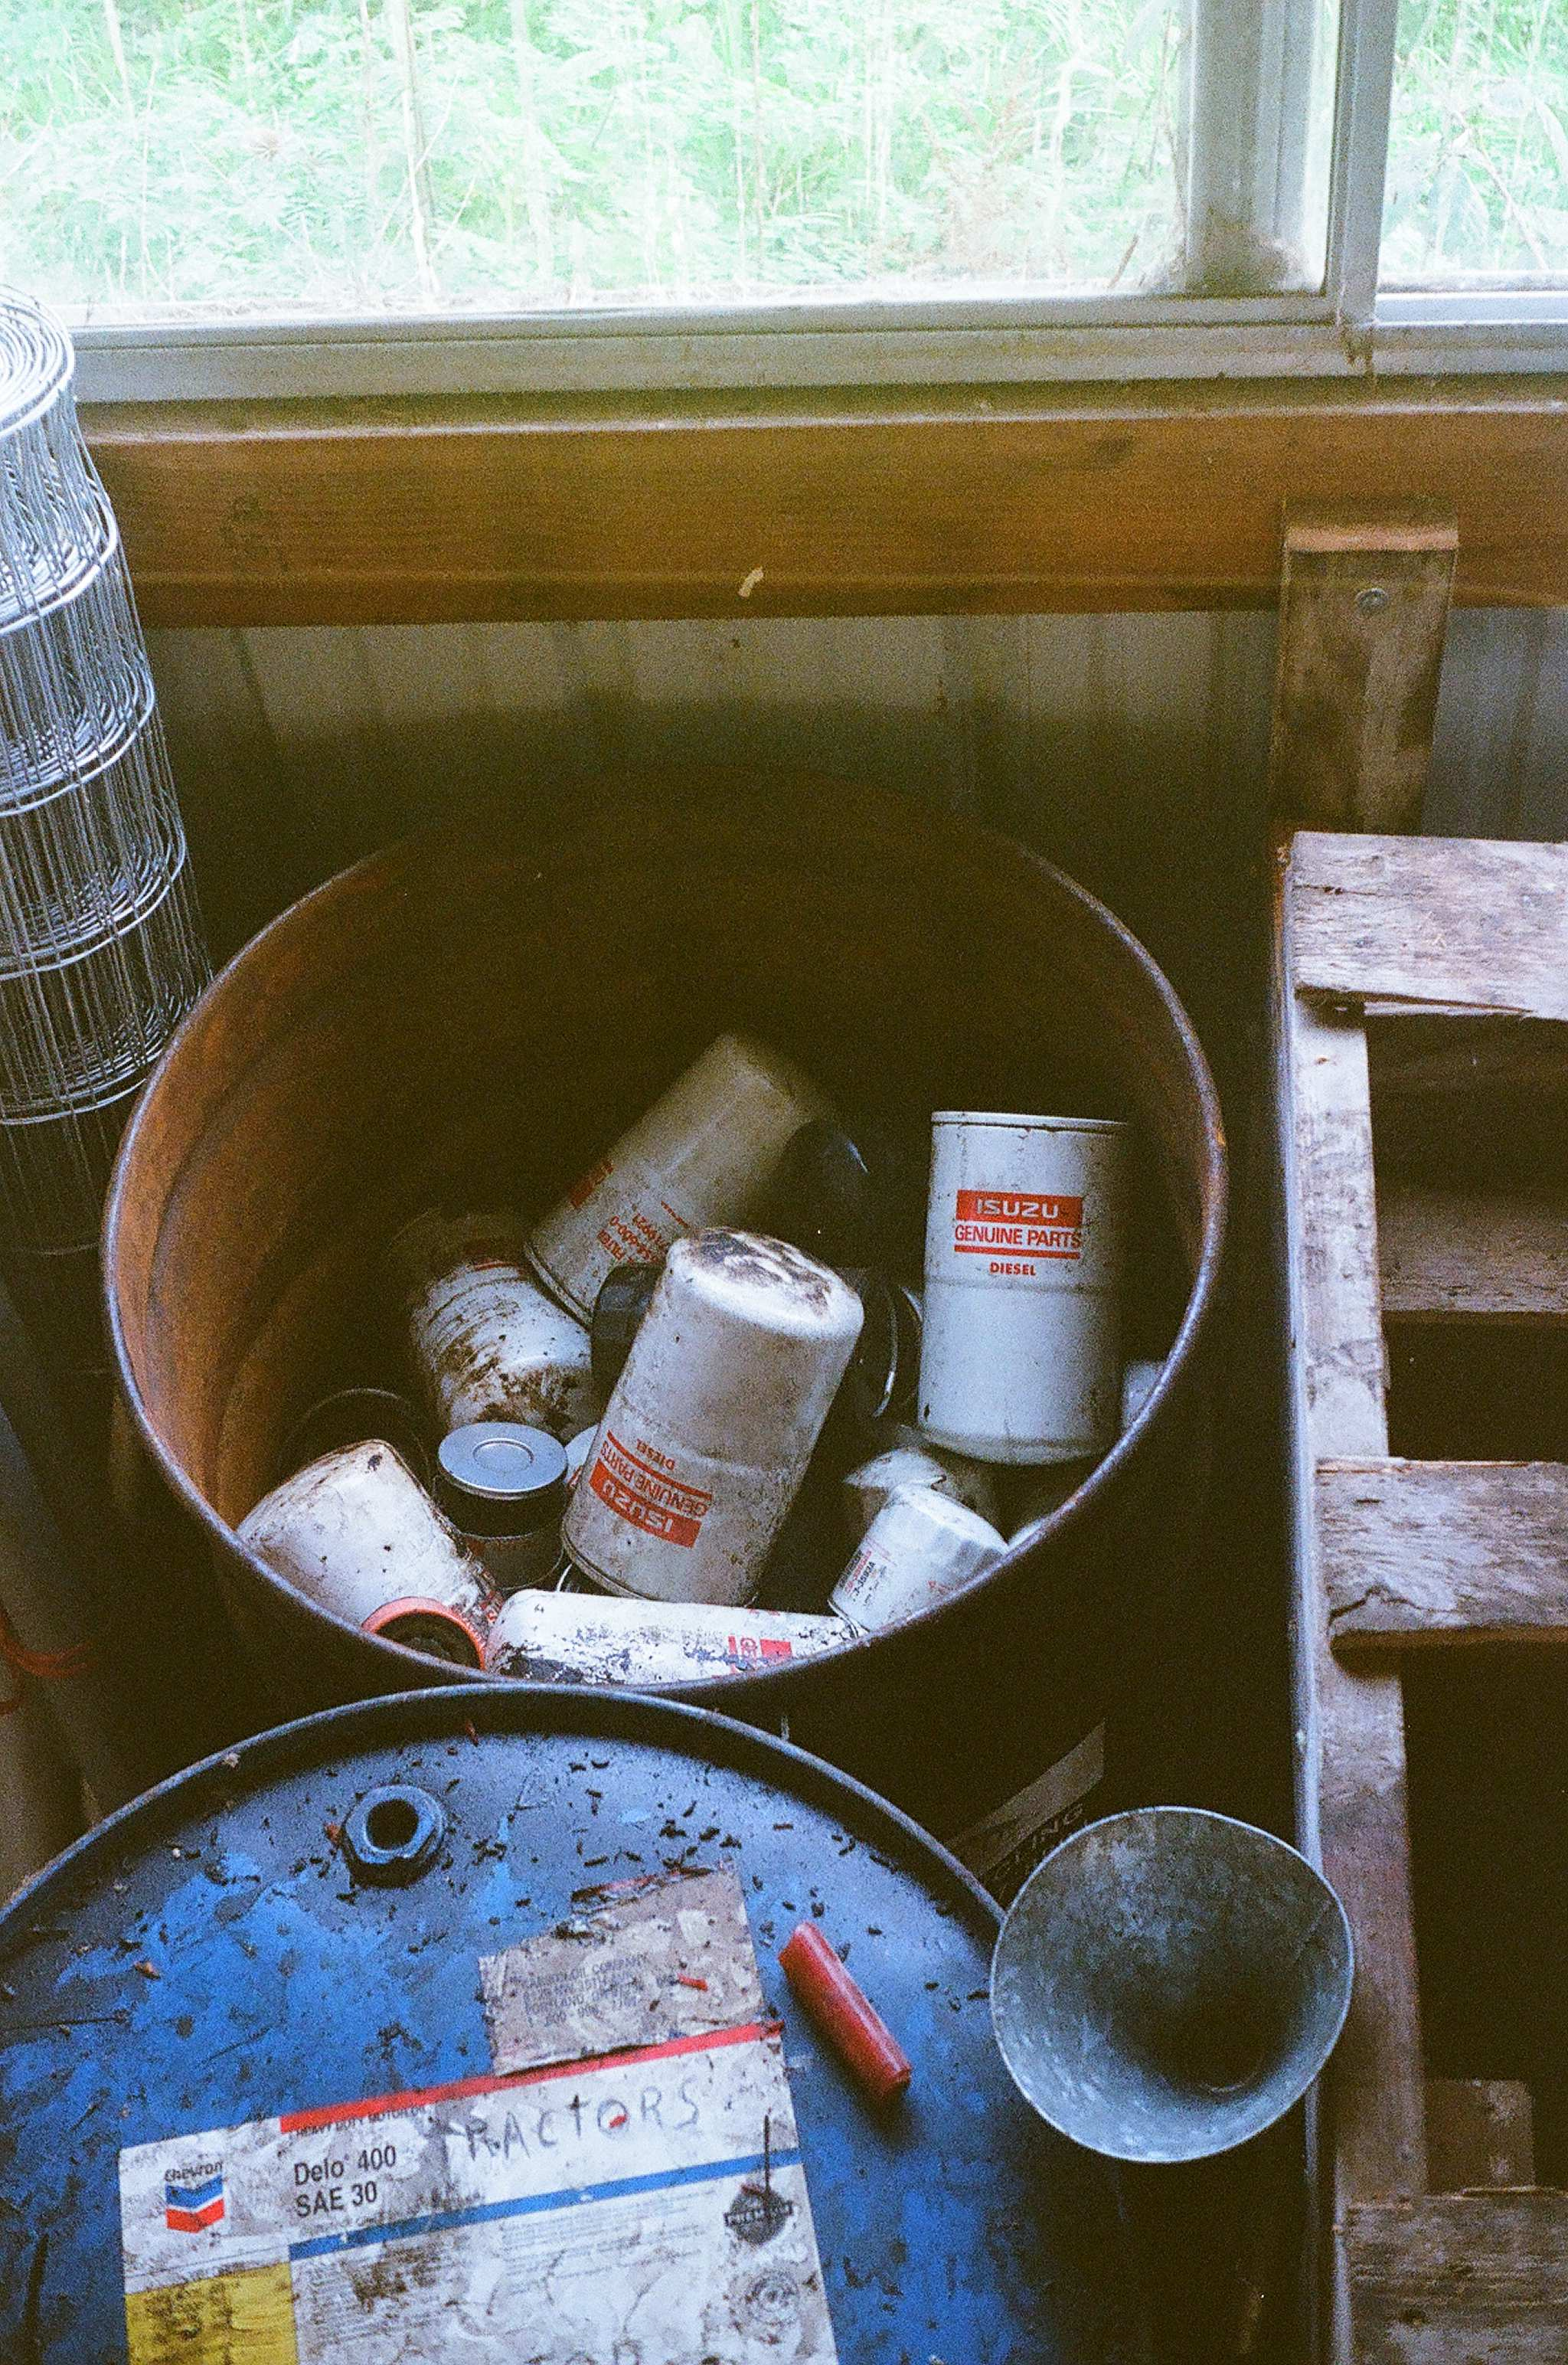 Used oil filters are stored in a barrel before being transported to a Portland company that separates and recycles the steel, paper, and oil in the filters. It takes ten years to fill this barrel!